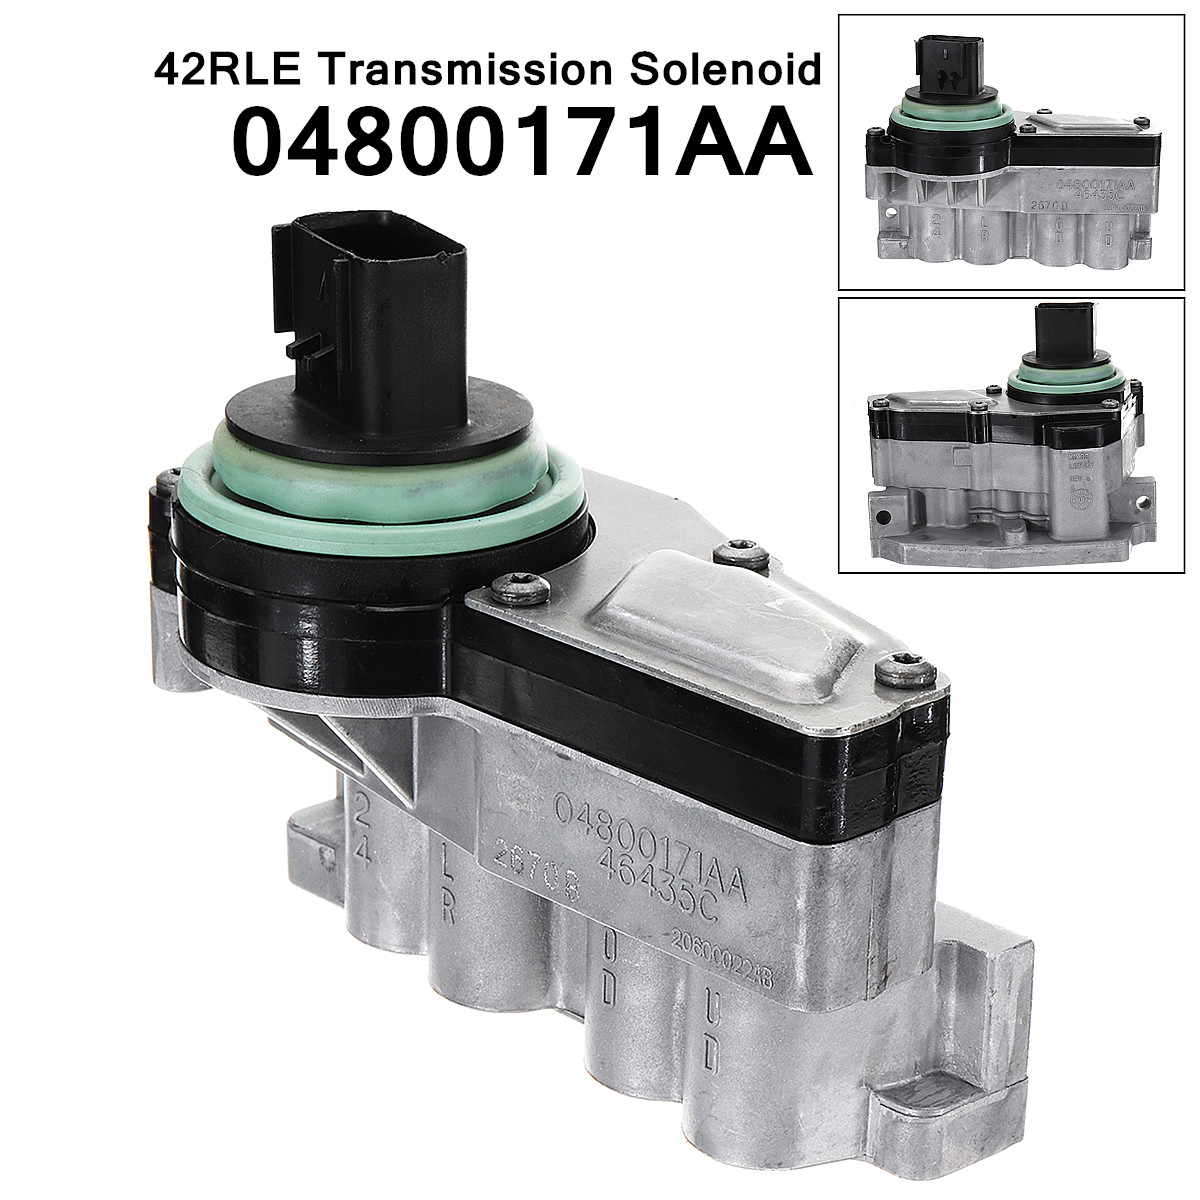 US $83 4 |04800171AA 42RLE Transmission Shift Solenoid Block Pack Fits  Mechanical Stability Corrosion Protection for Dodge Chrysler-in Automatic